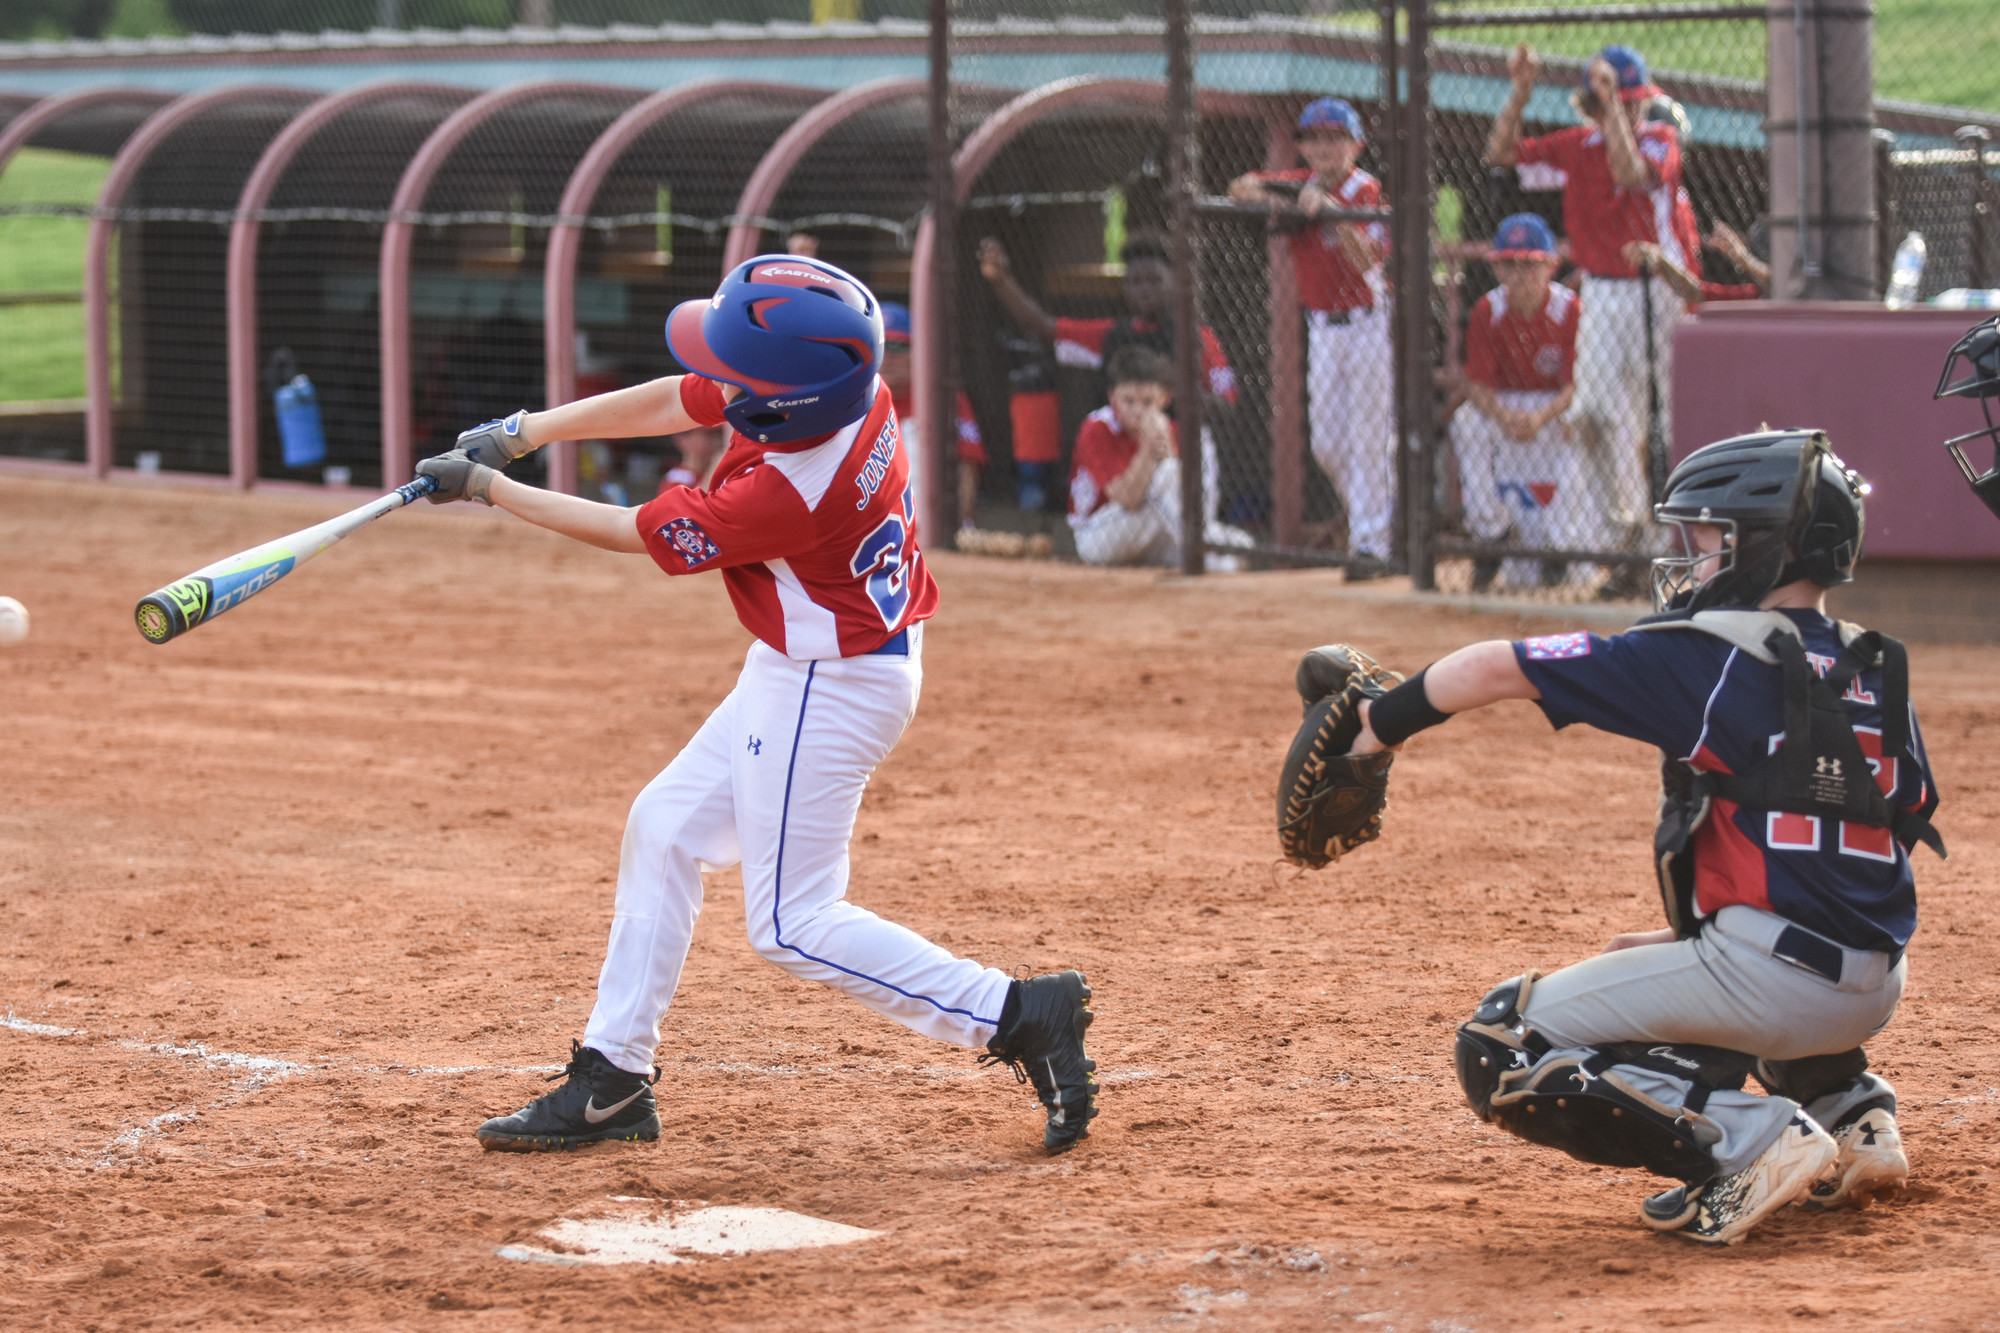 National beats American 9-6 in 9-10 Dixie Youth district tournament